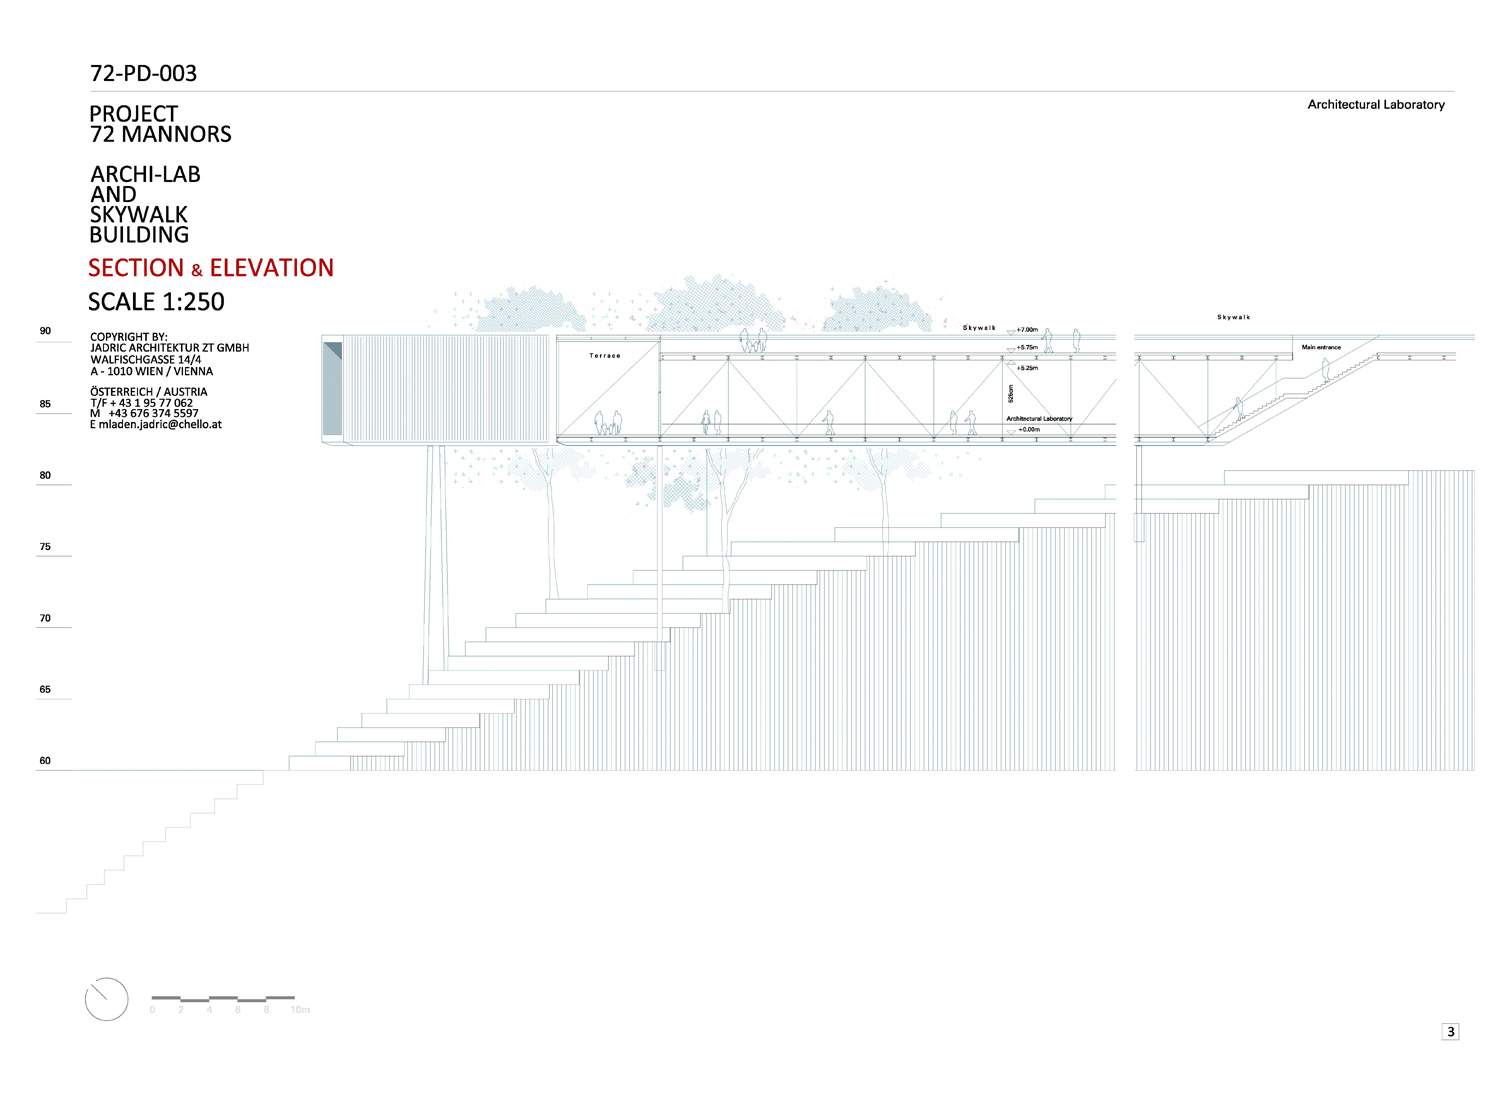 THE SECTION AND ELEVATION PLAN © 2018 JADRIC ARCHITEKTUR ZT GMBH - All Rights Reserved }